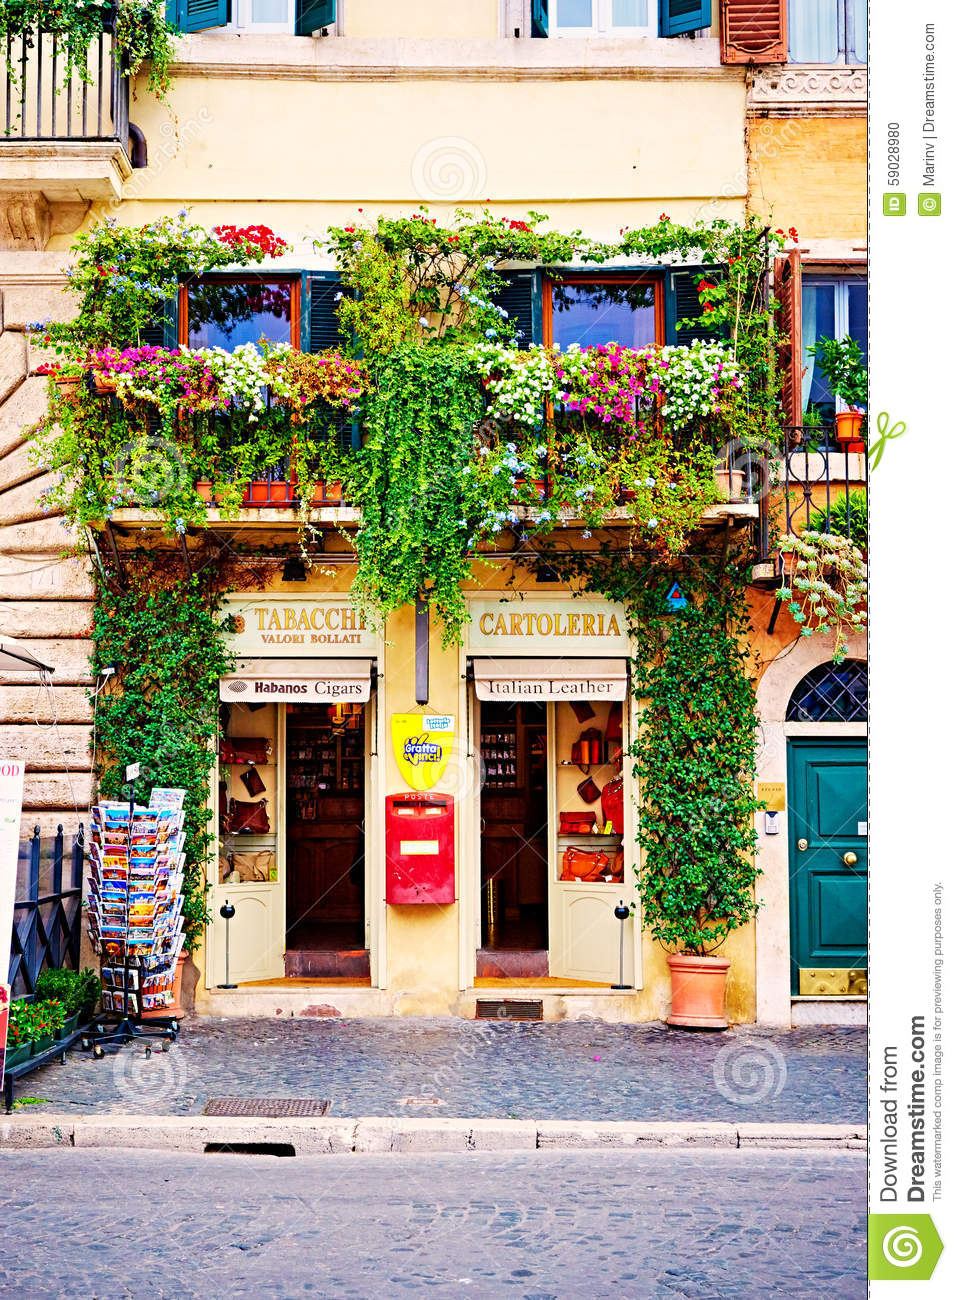 balconies full of of flowers and greenery decorate houses and